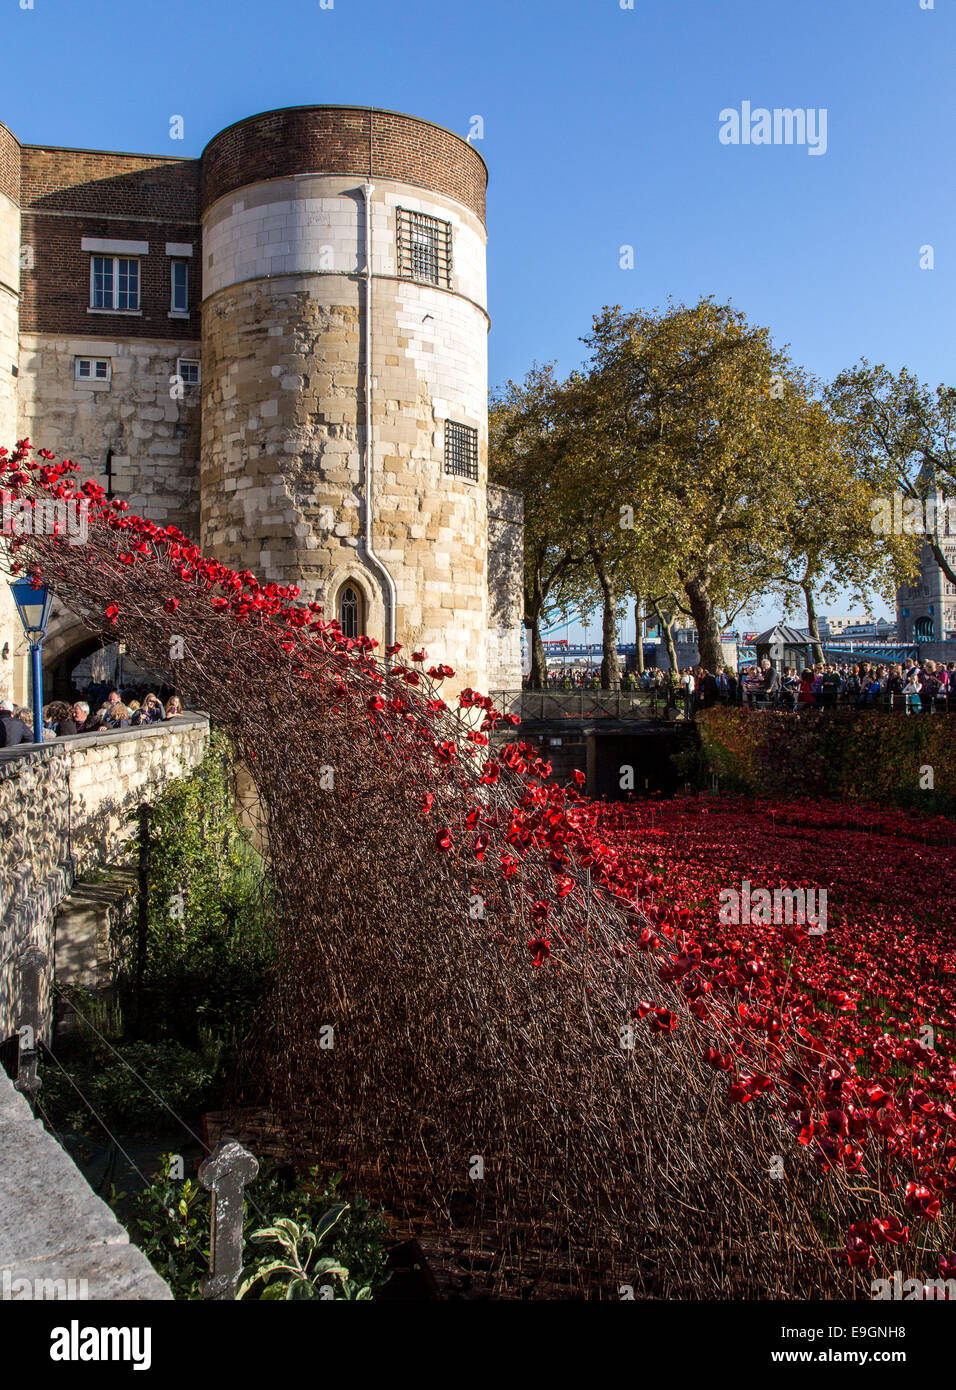 Blood Swept Lands and Seas of Red - Poppies Tower of London UK - Stock Image